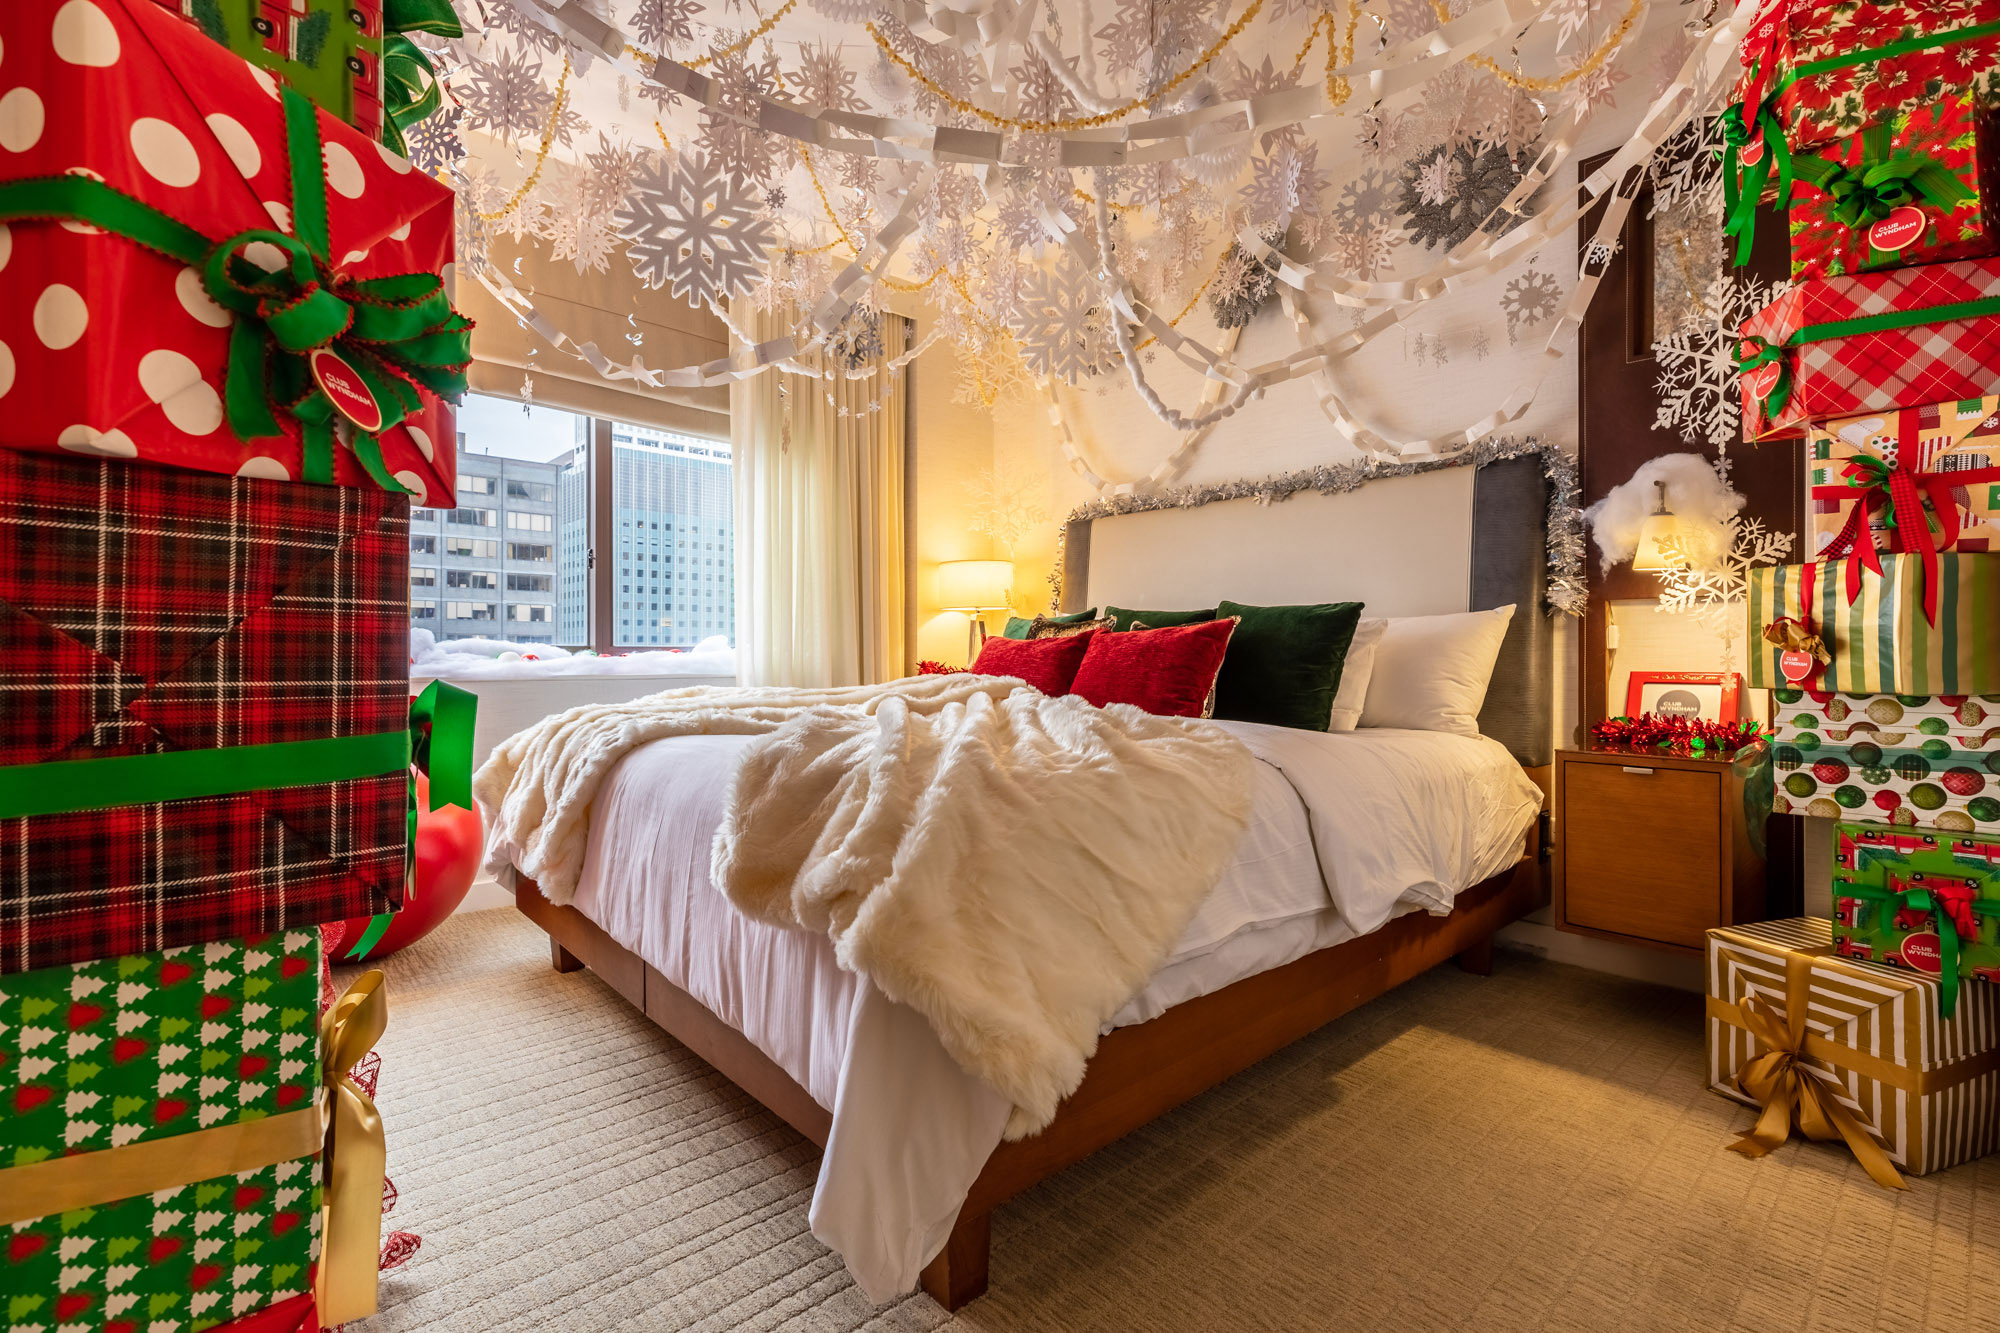 Paper snowflakes. Popcorn garlands. Tons of presents. It's like sleeping under the tree on Christmas Eve